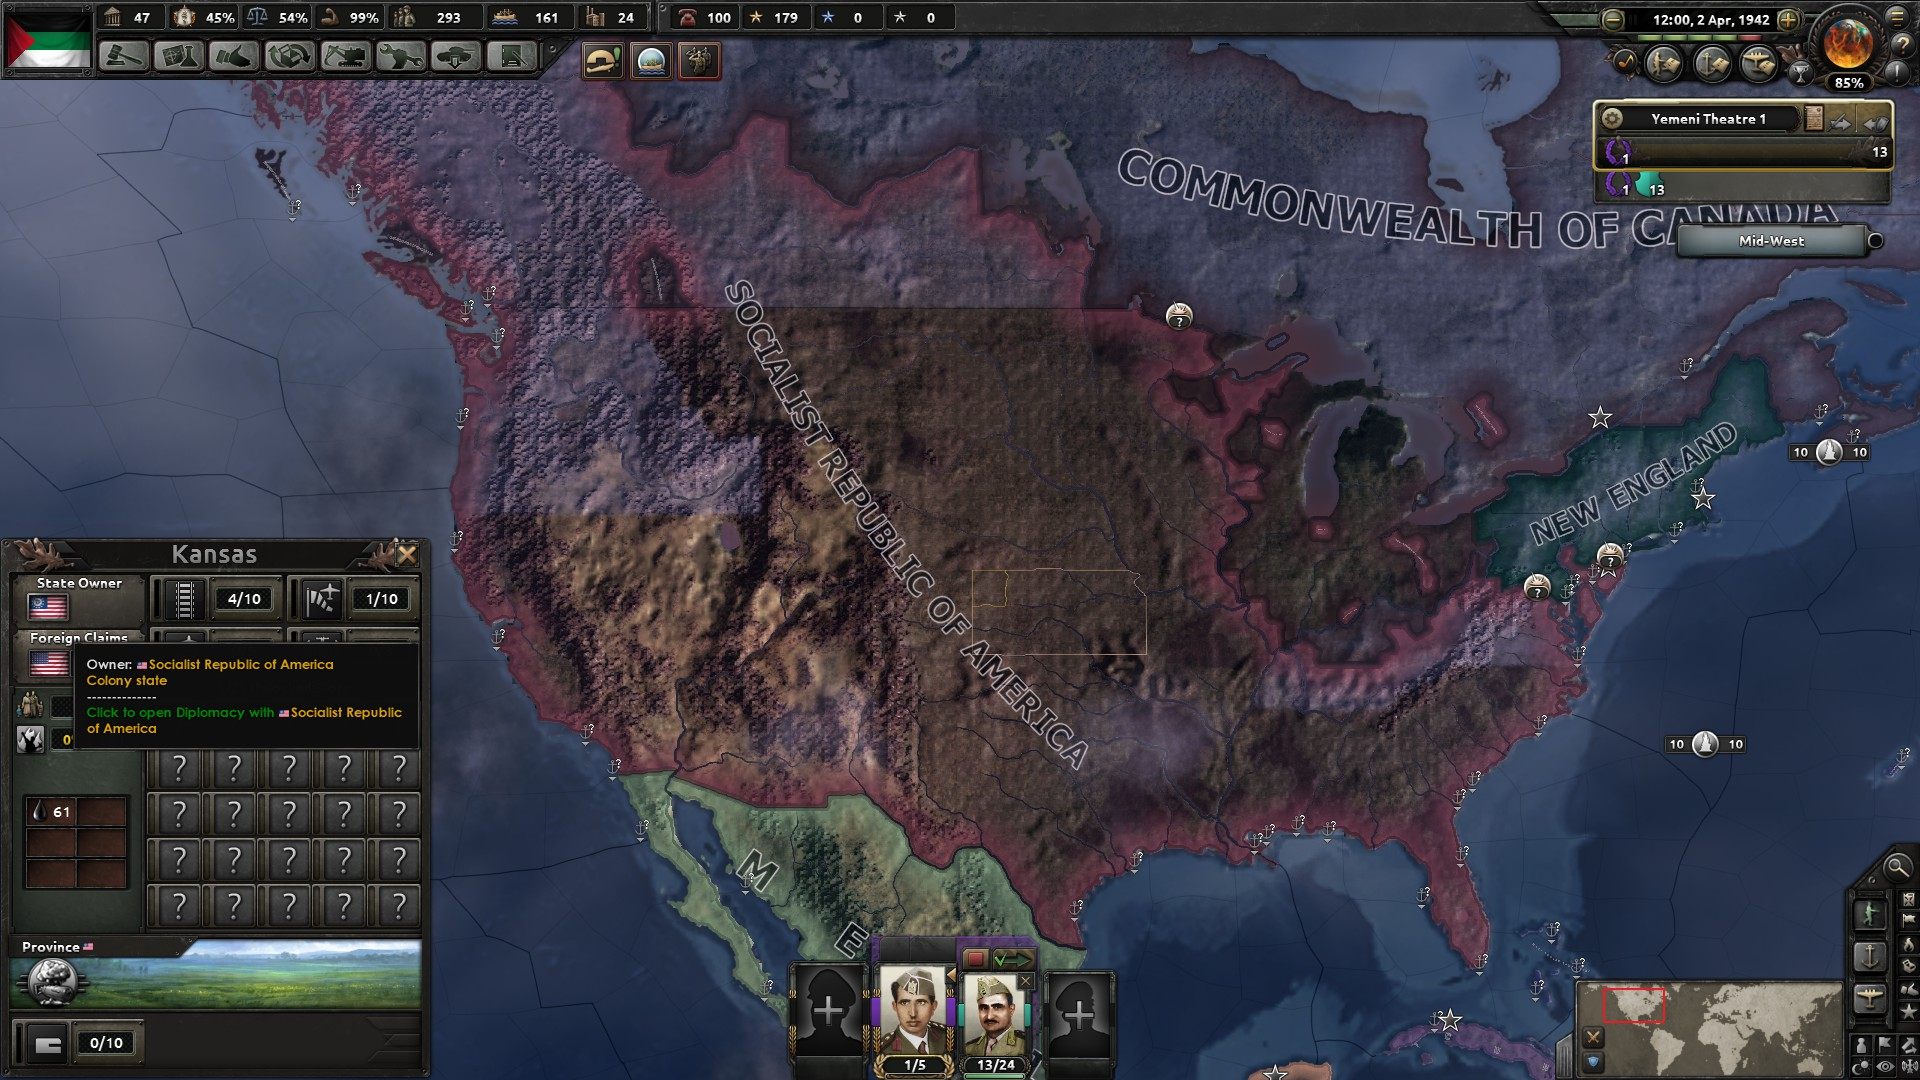 Socialist America (CSA) not receiving cores after Civil War · Issue